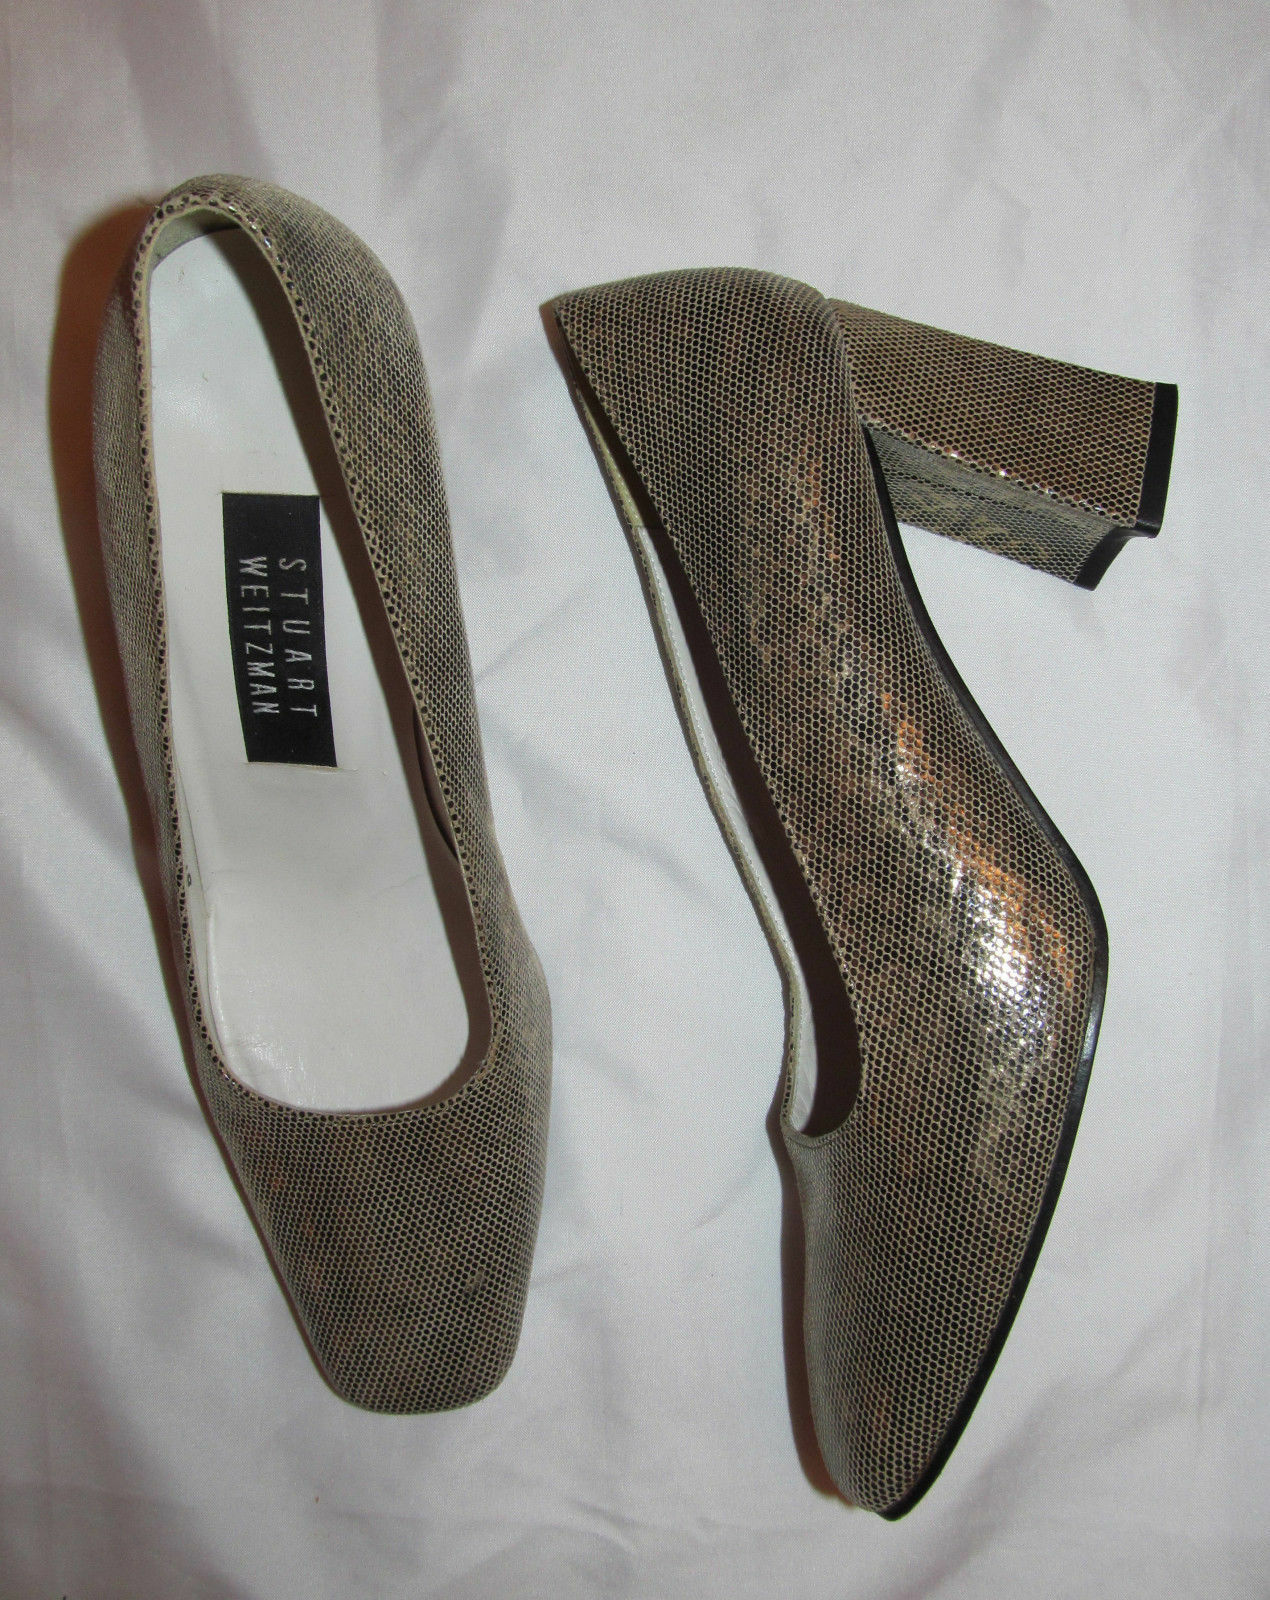 STUART WEITZMAN metallic iridescent snake python block heel  pumps shoes 7.5